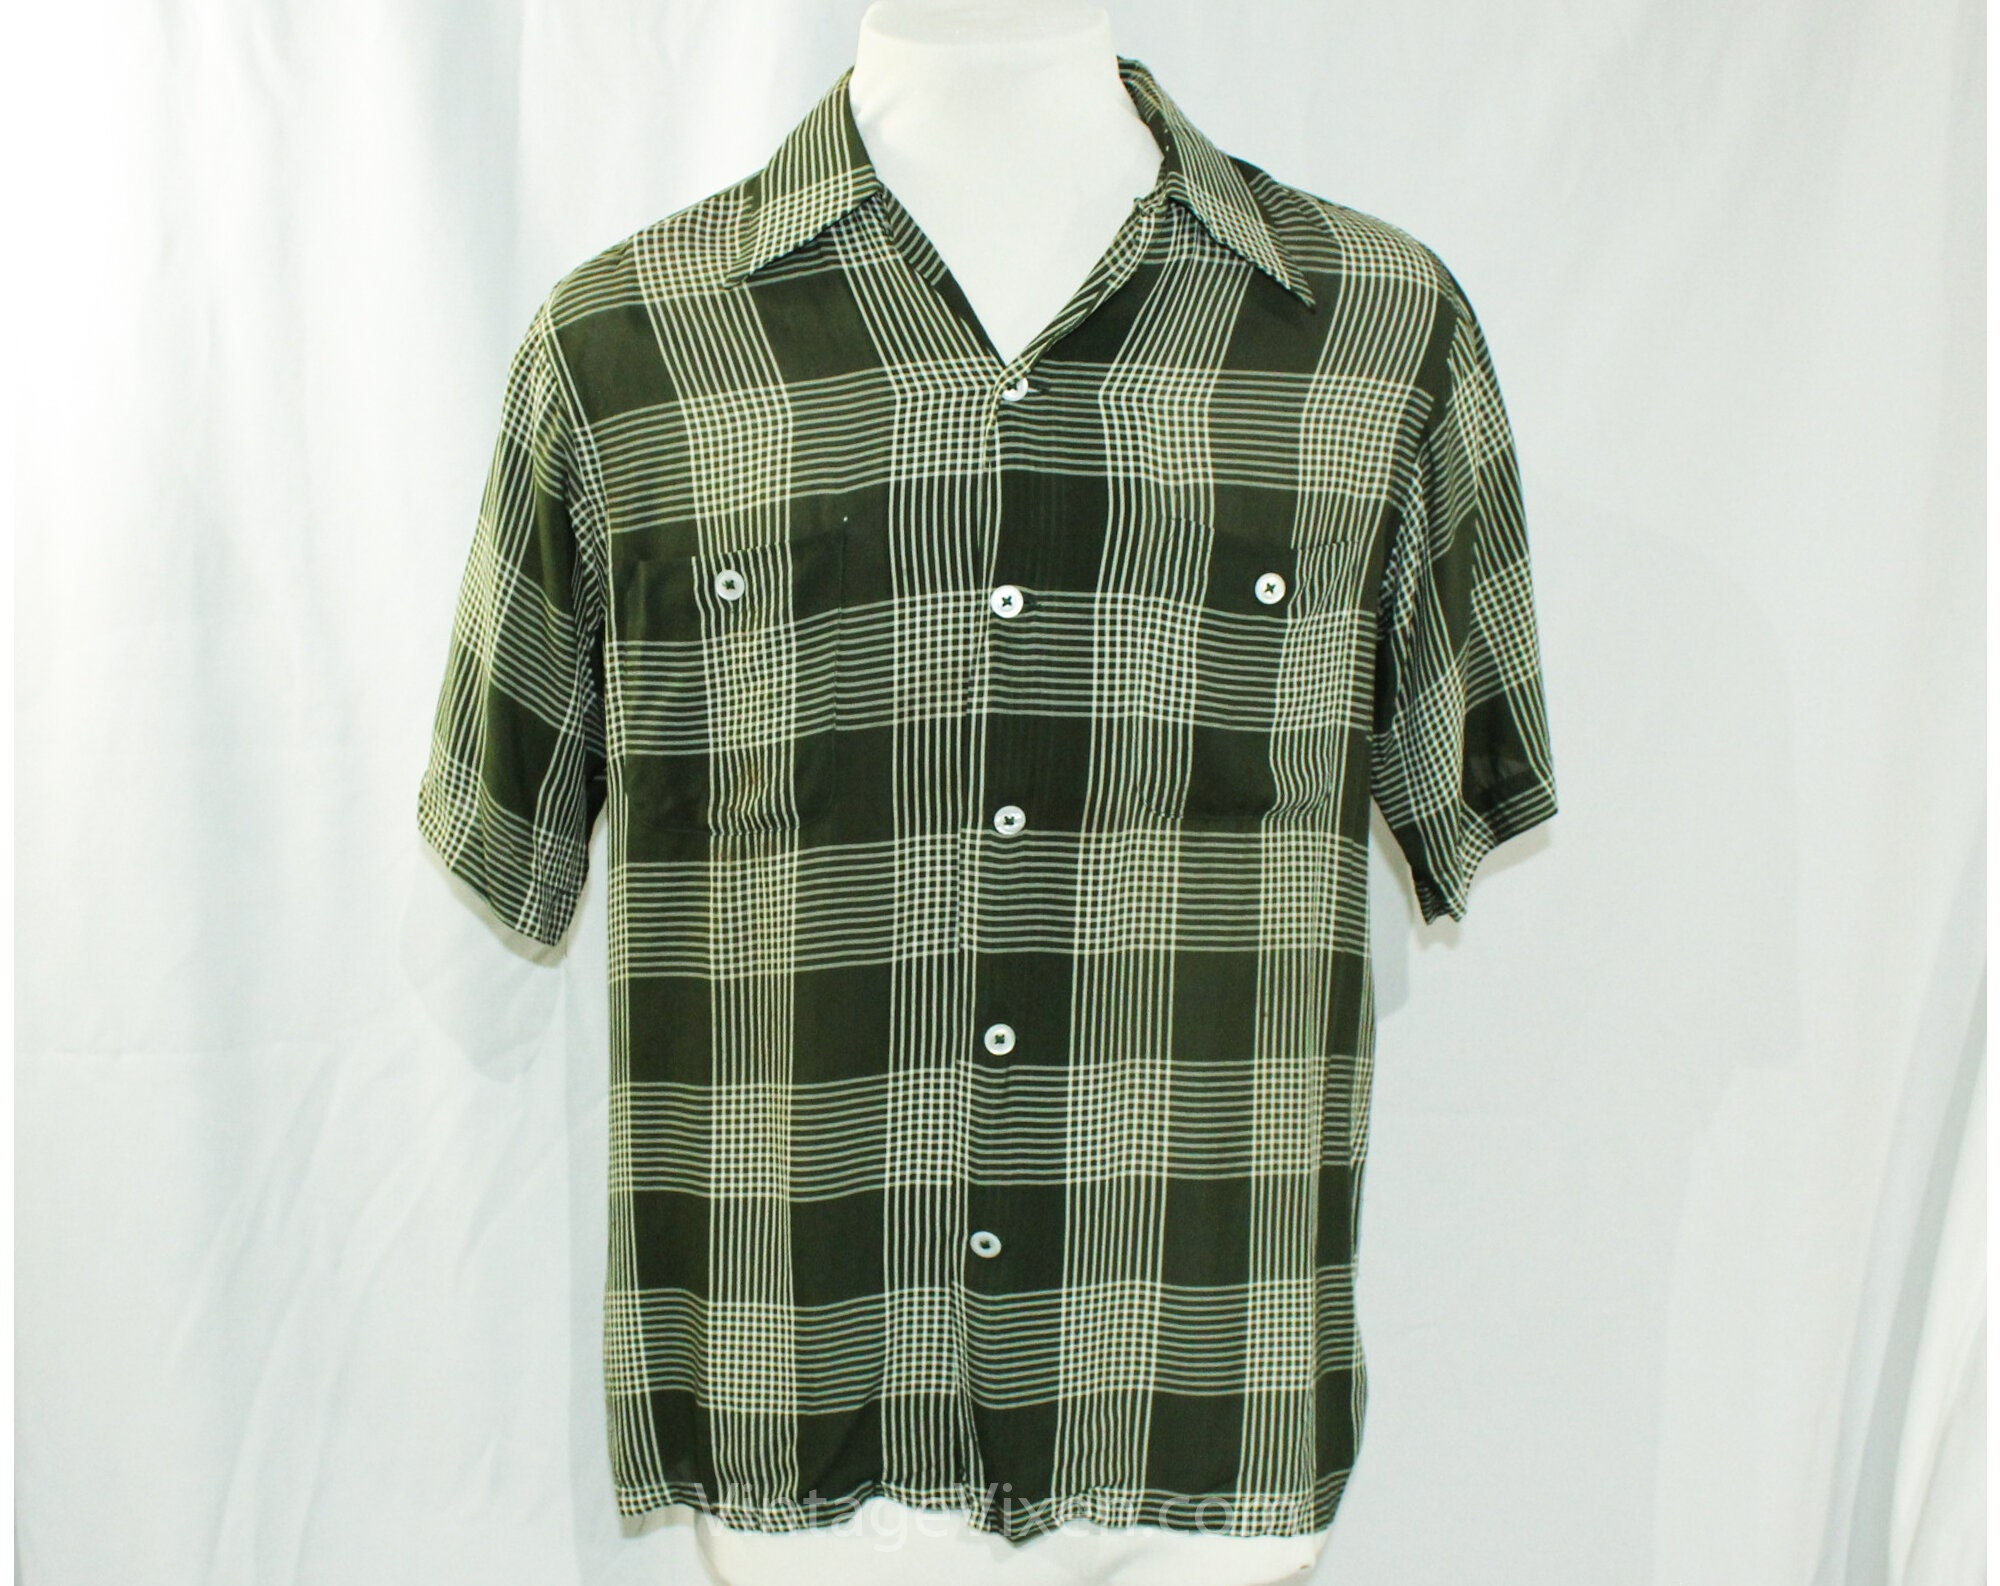 1940s Men's Shirts, Sweaters, Vests Large 1940S Mens Rayon Shirt - Spinach Green  White Plaid Sheer Summer Casual With Shell Buttons Mens 40S Rarity As Is Chest 46 $29.99 AT vintagedancer.com